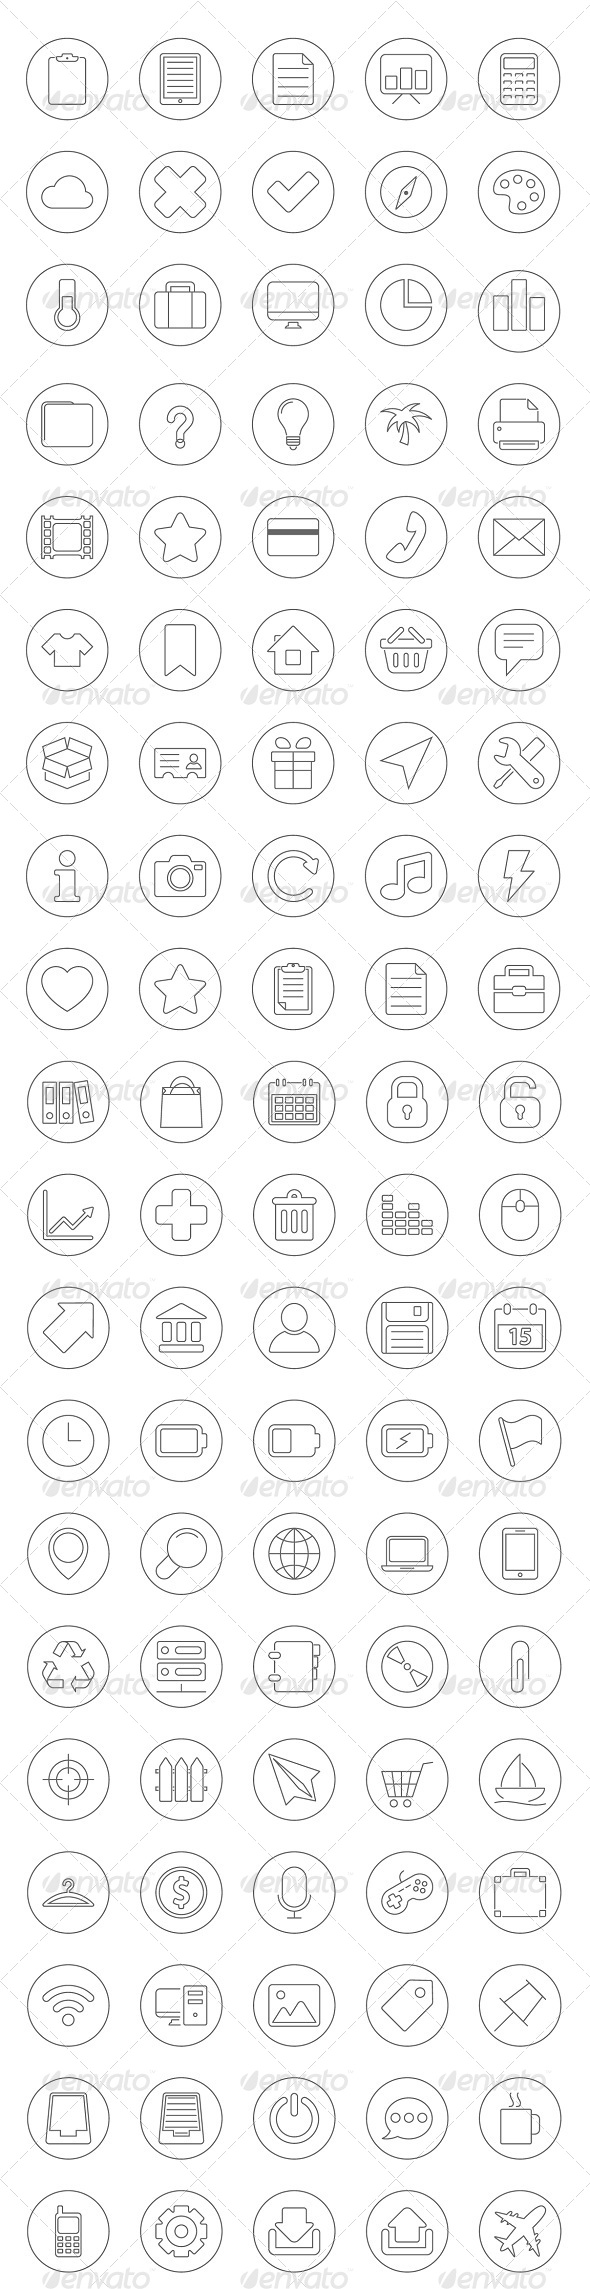 100 Universal Icons Set - Icons